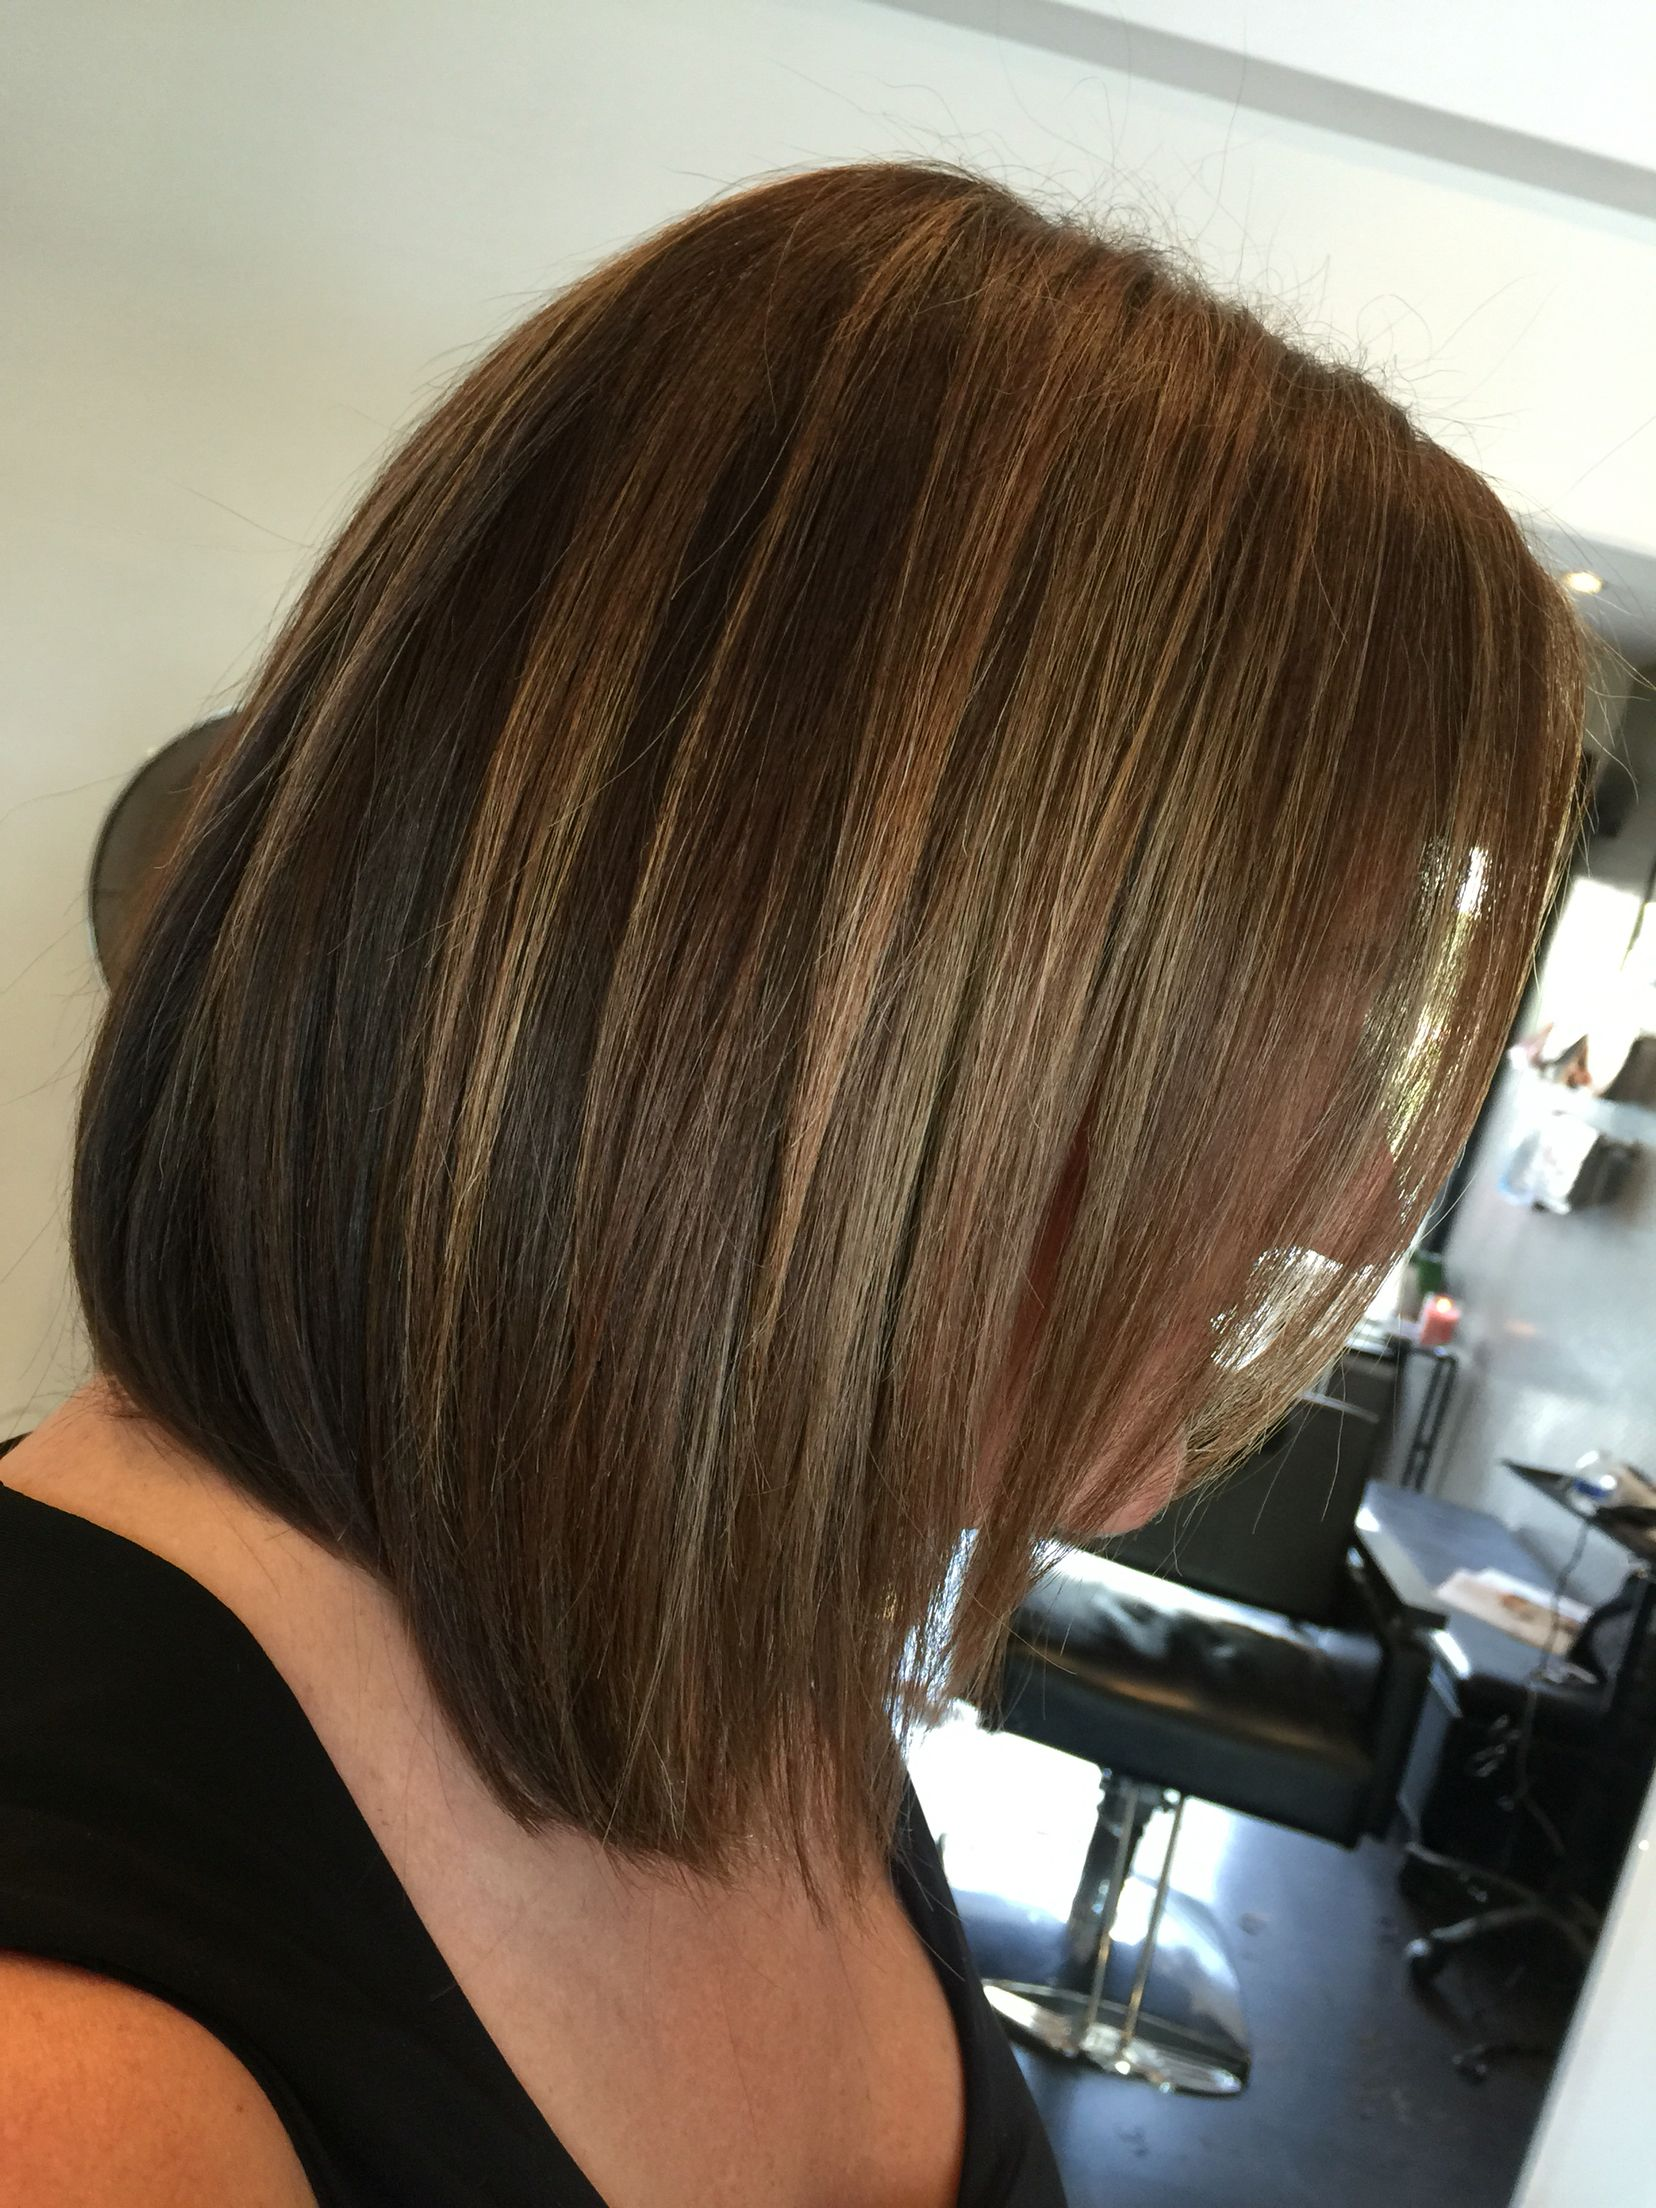 Long Layered Bob Sandy Caramel Highlights On Natural